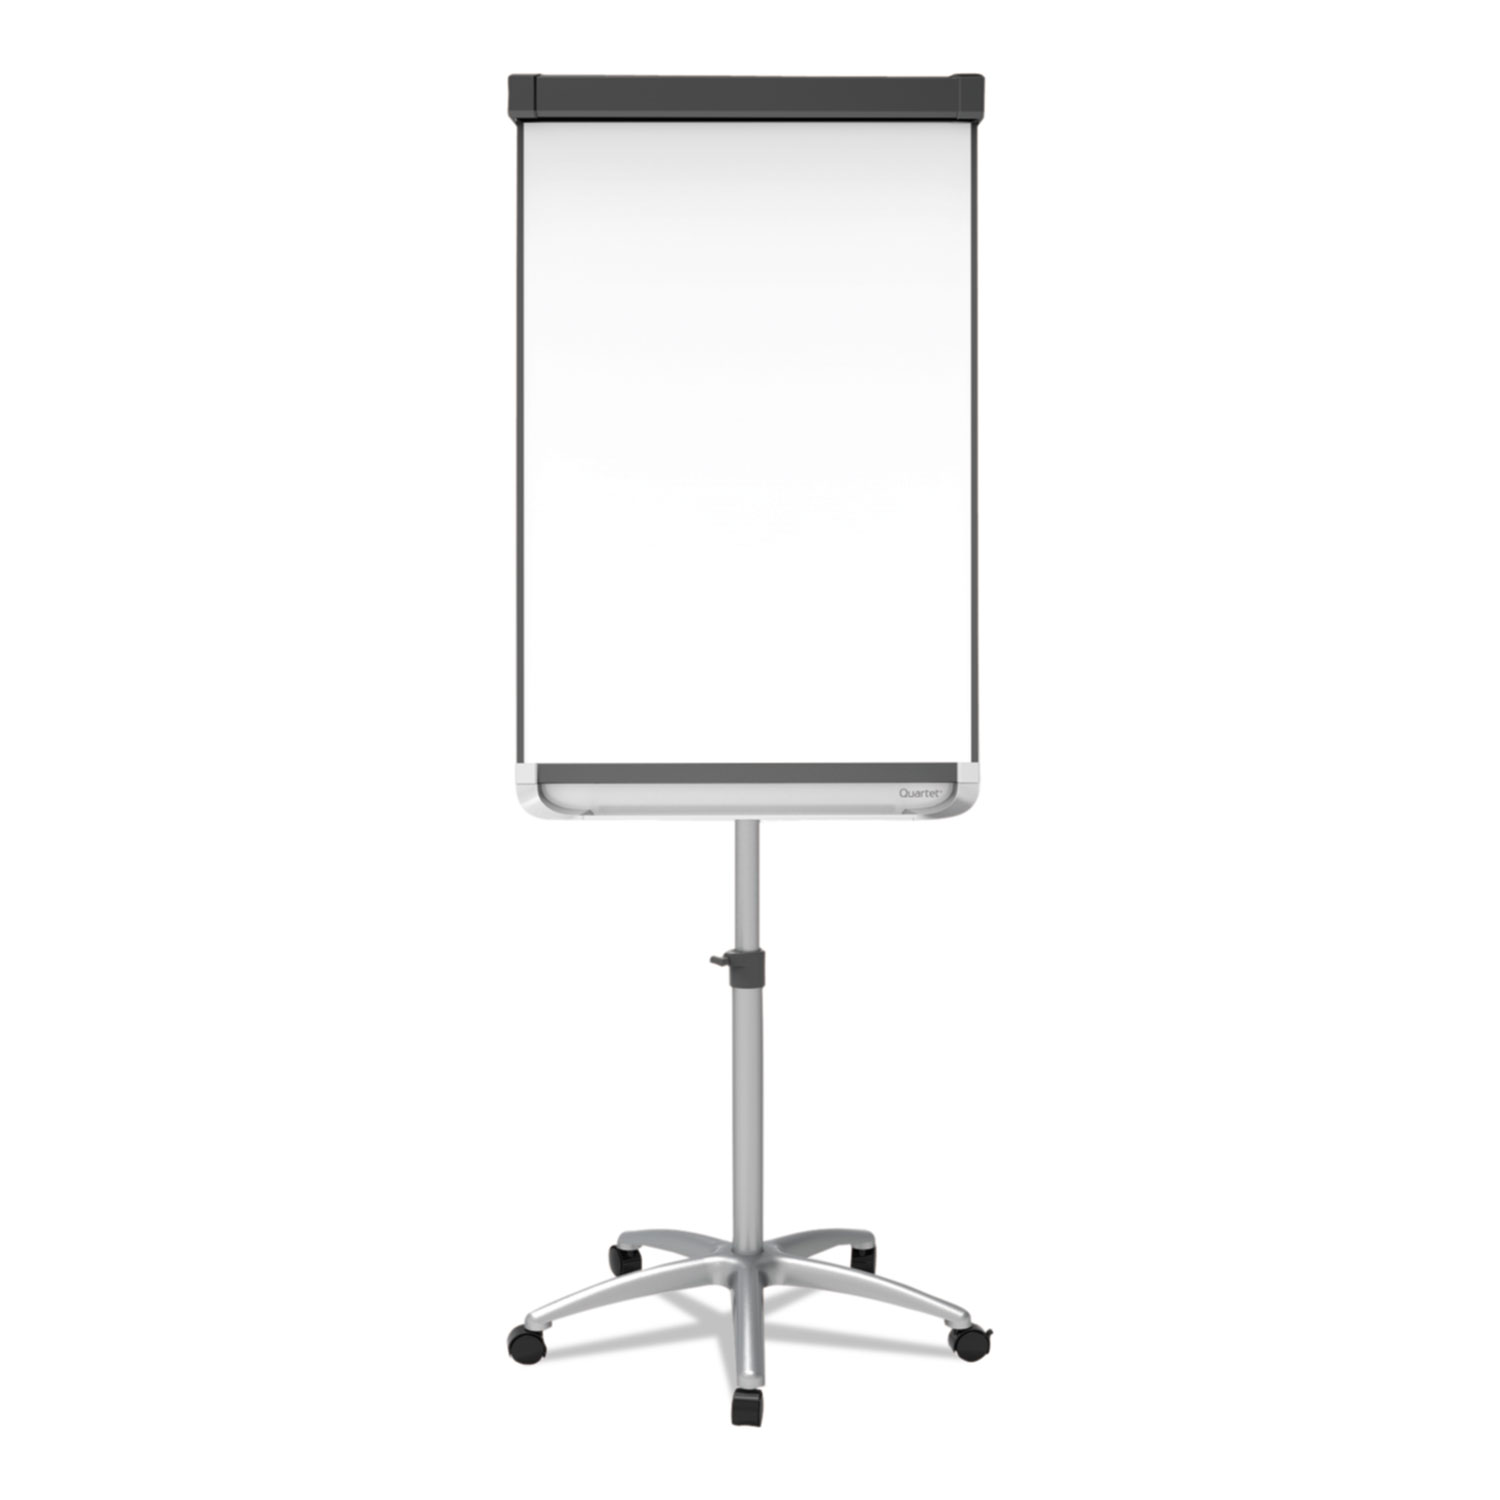 Picture of Prestige 2 Mobile Presentation Easel,  3 ft x 2 ft, Silver/White